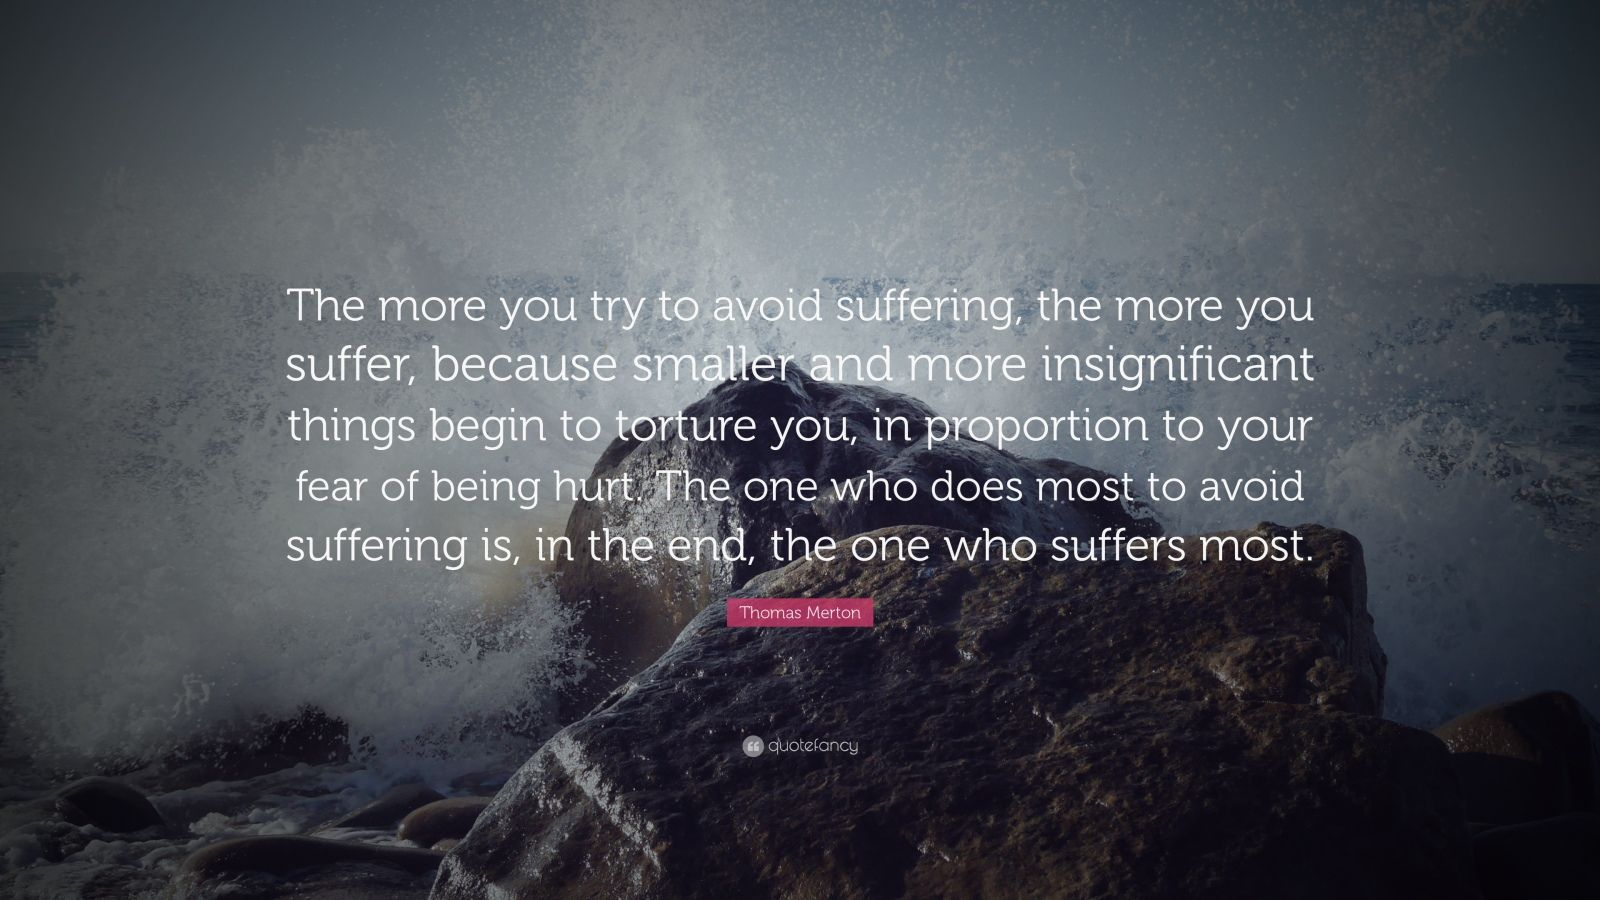 "Thomas Merton Quote: ""The more you try to avoid suffering, the more you suffer, because smaller and more insignificant things begin to torture you, in proportion to your fear of being hurt. The one who does most to avoid suffering is, in the end, the one who suffers most."""